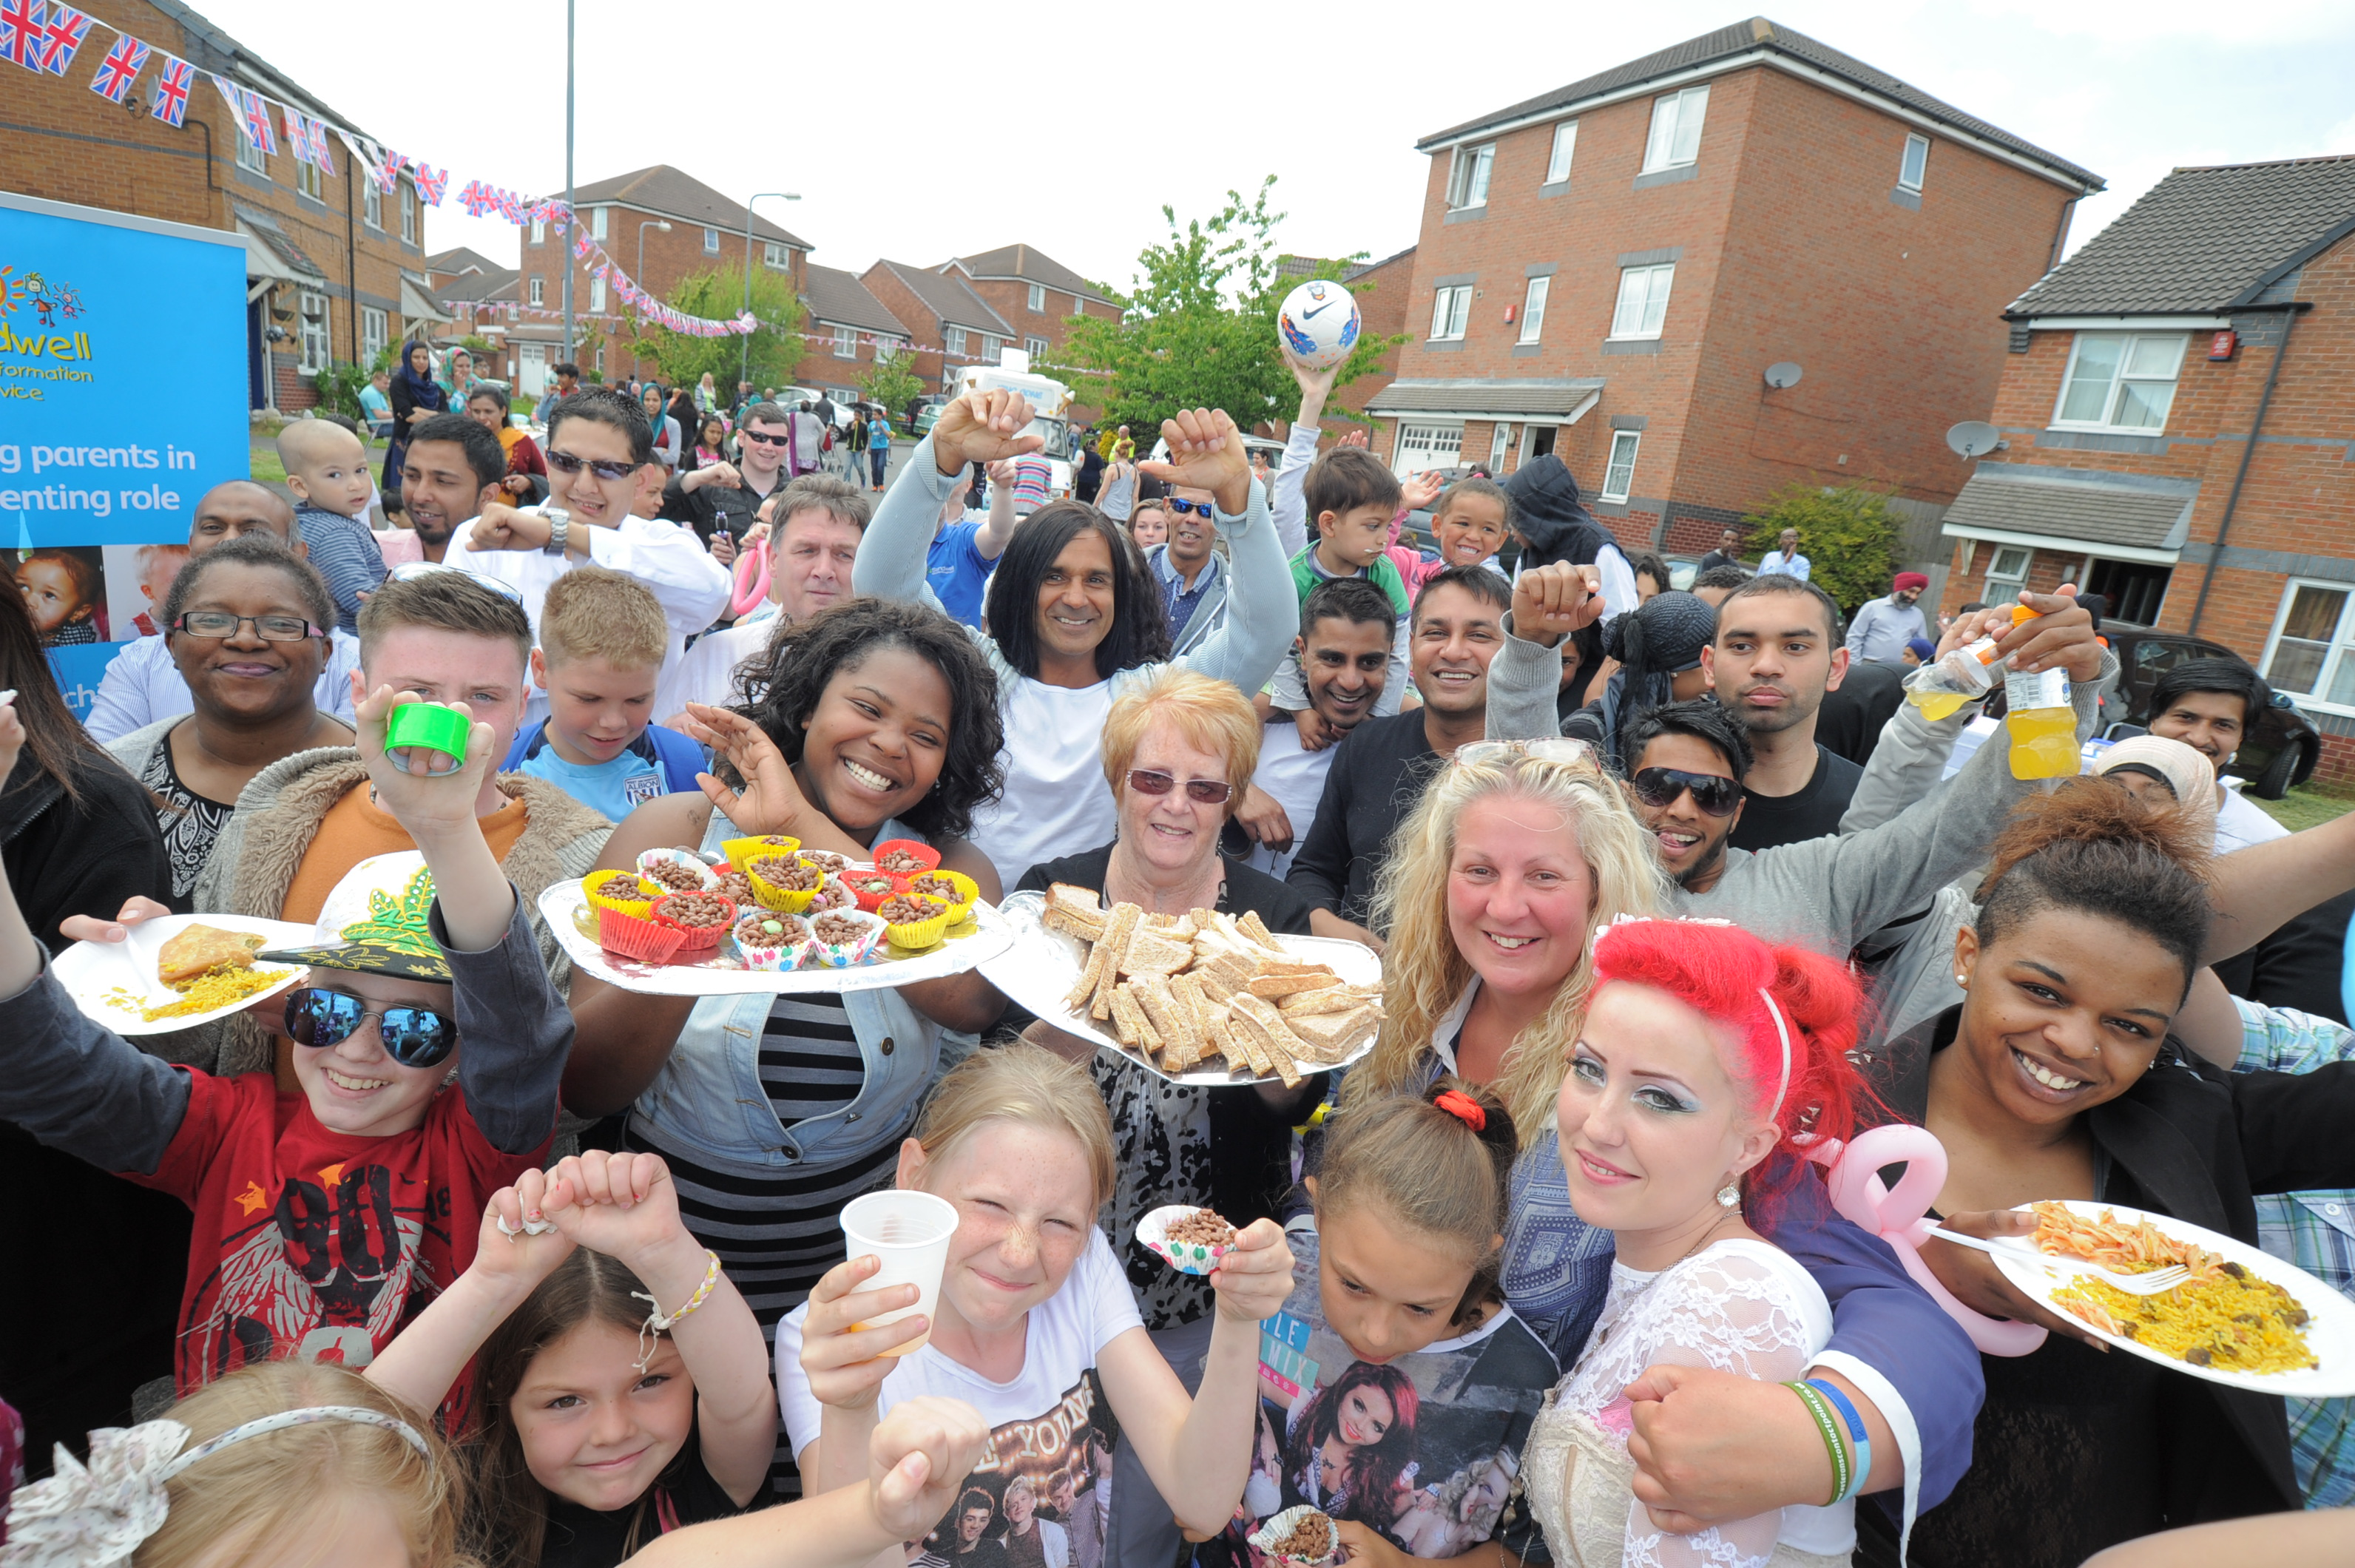 Neighbours get together for a Big Lunch in Birmingham